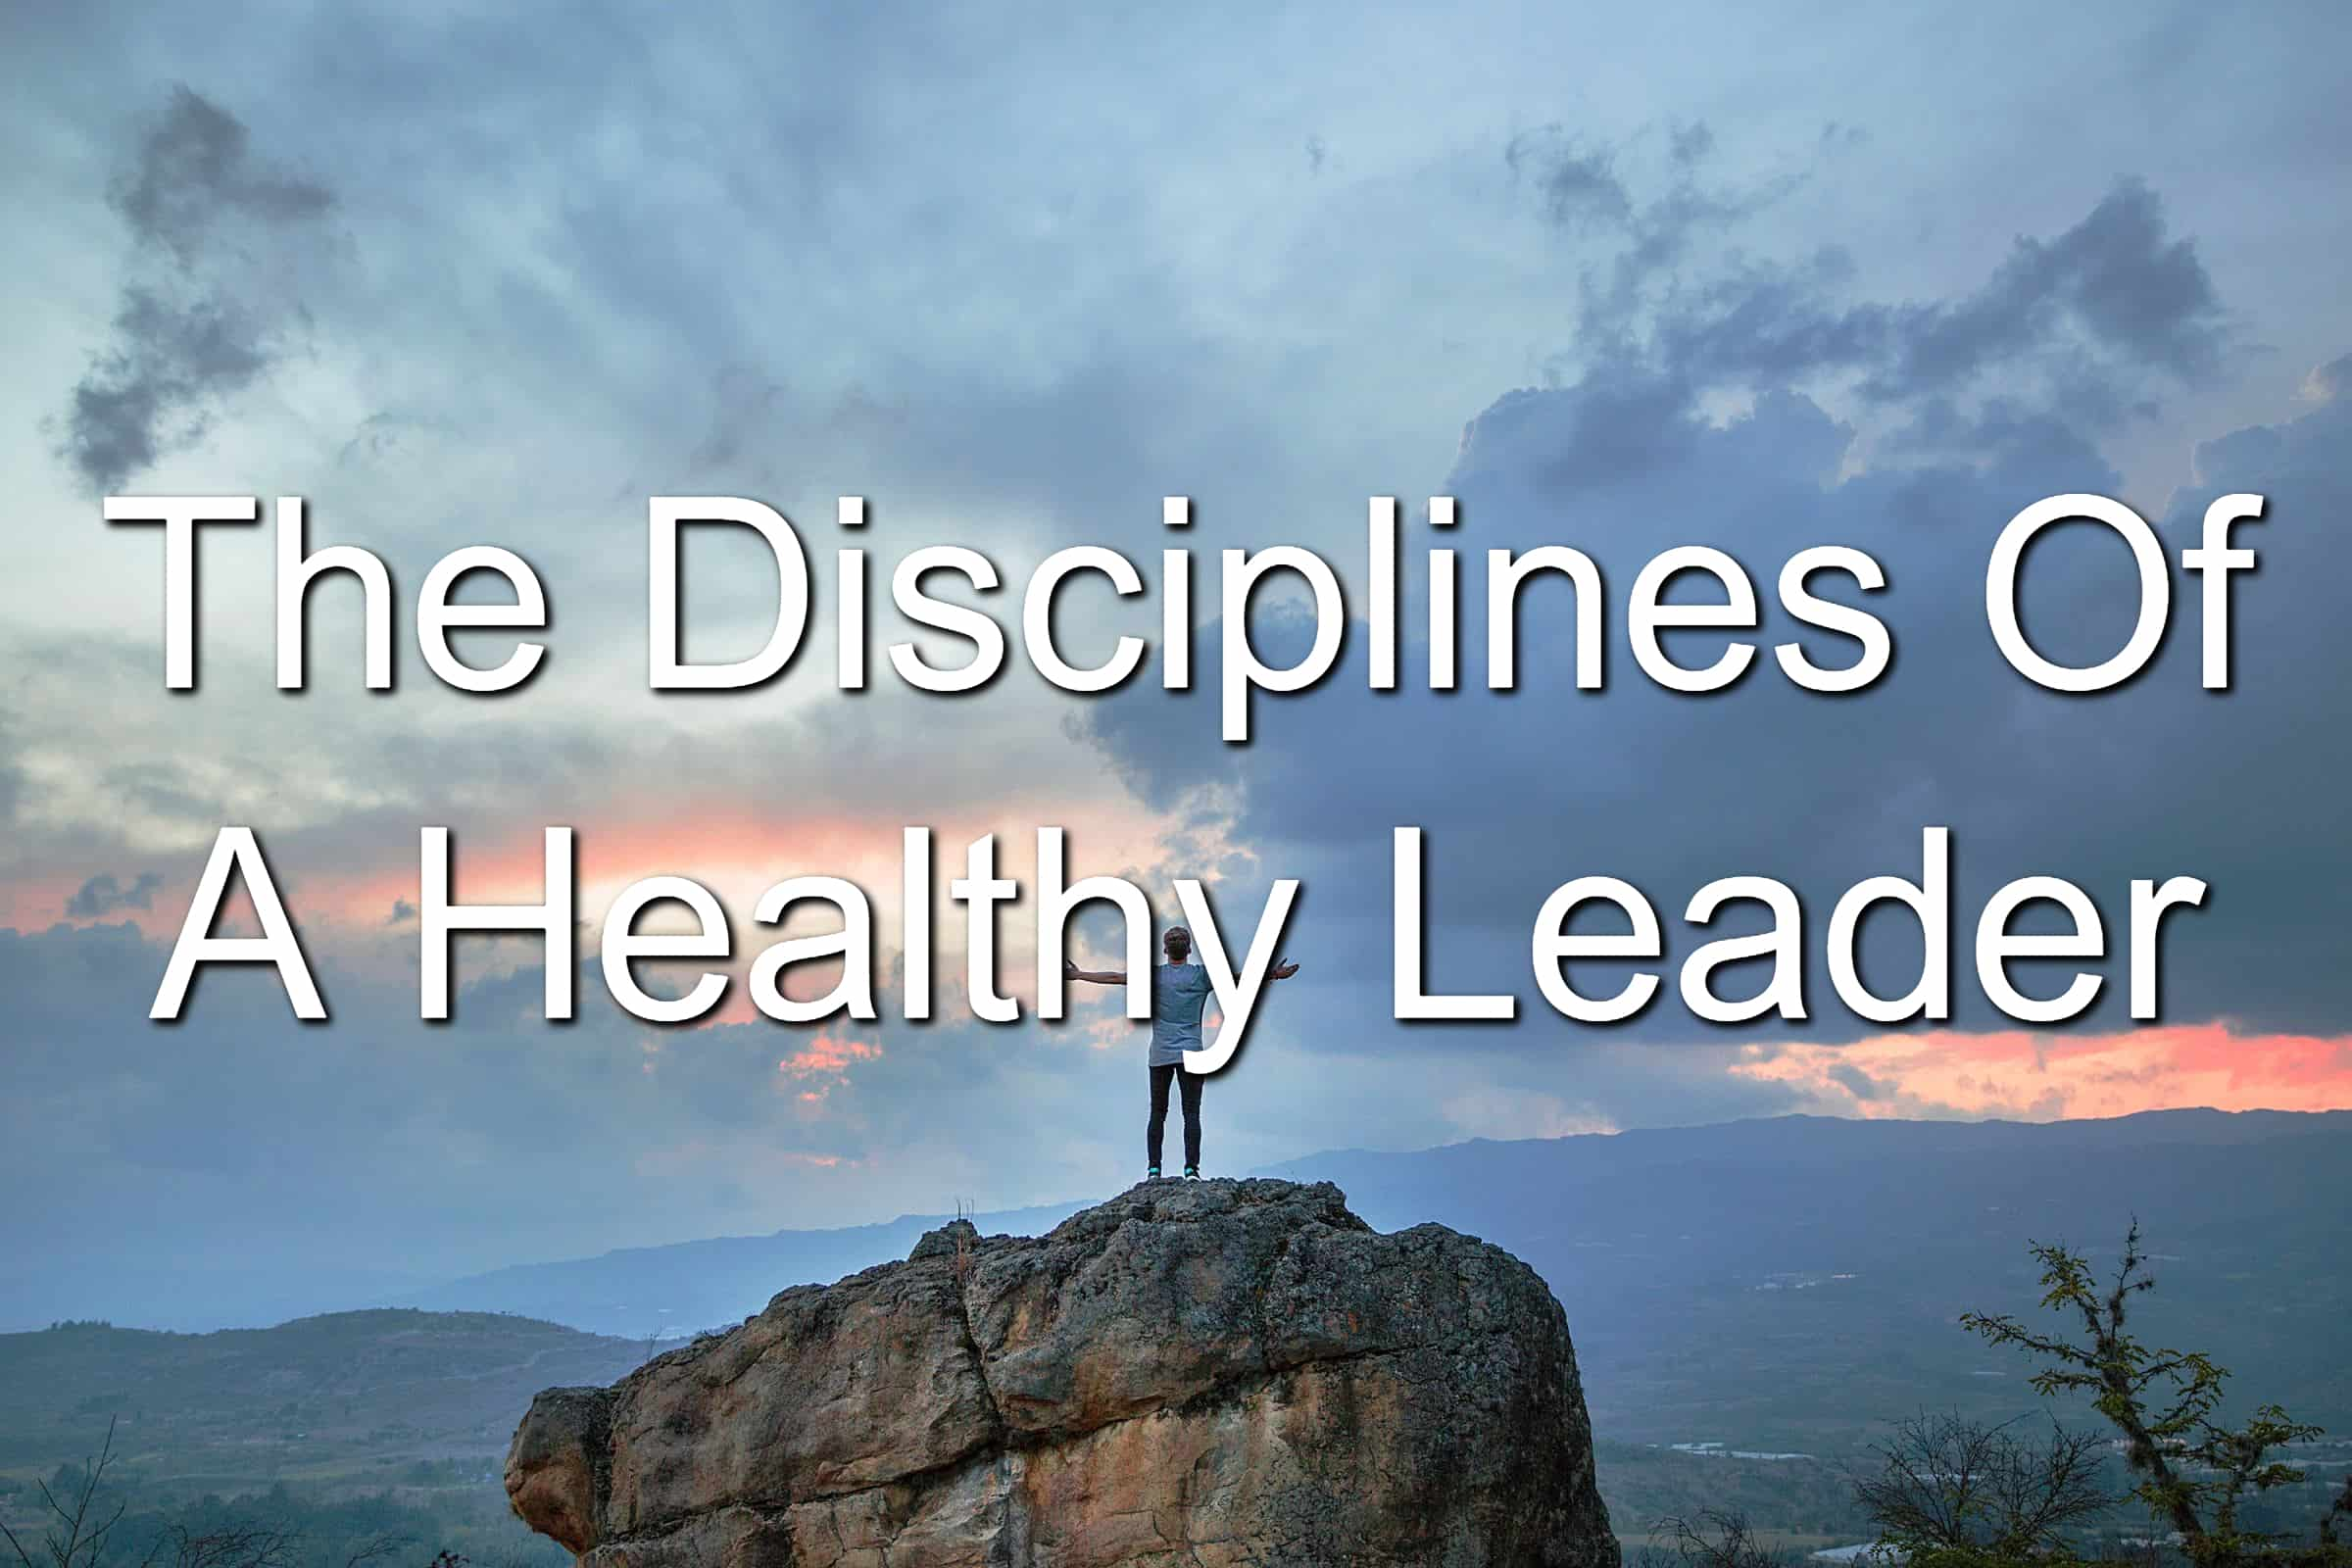 What disciplines does a healthy leader have?